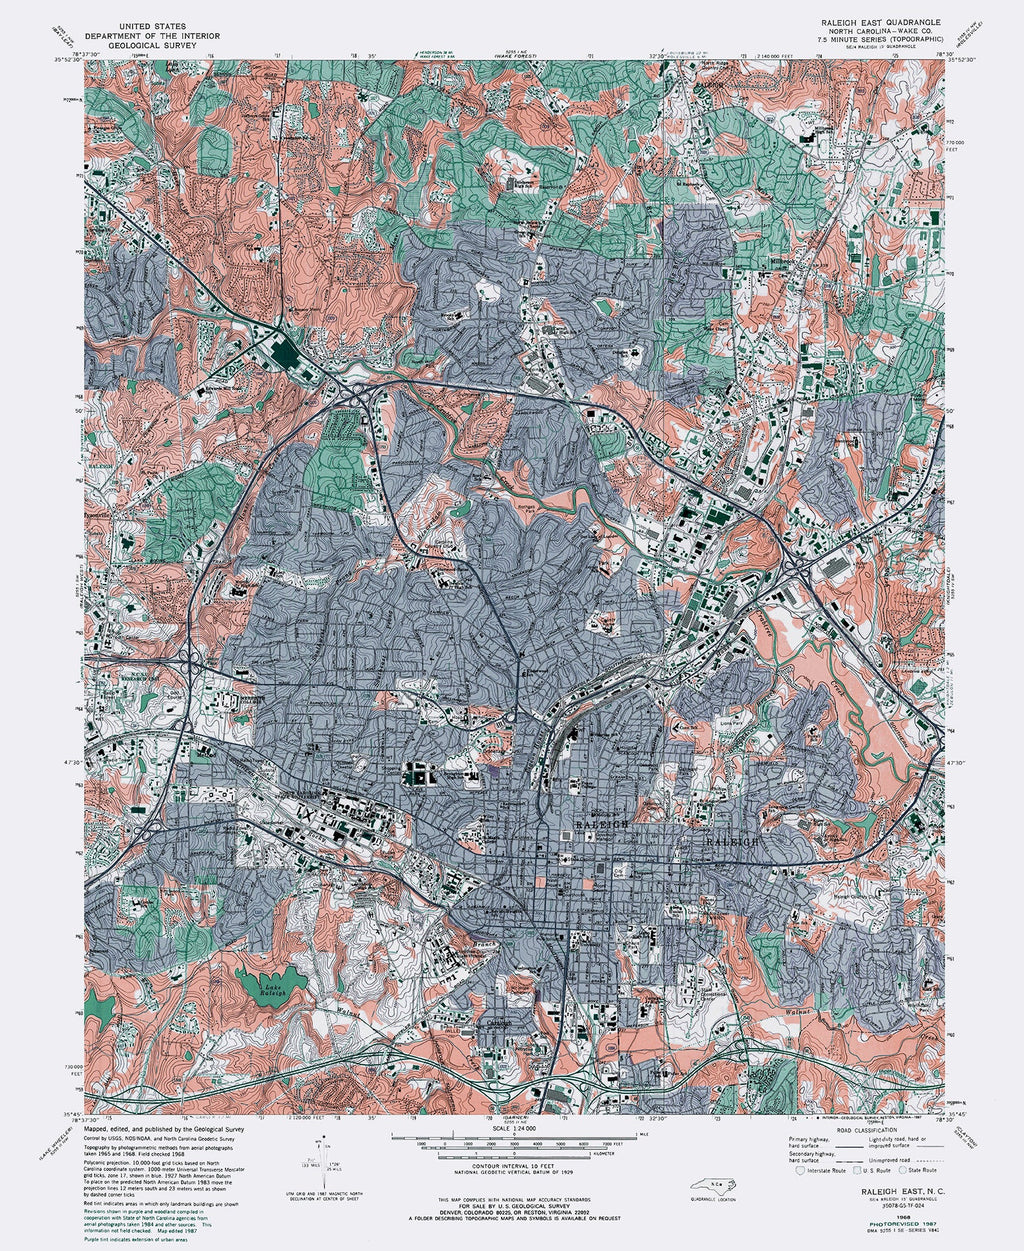 Topo Raleigh NC Map Print Wall Art Raleigh Poster Home Decor Office Decor Gift Raleigh North Carolina